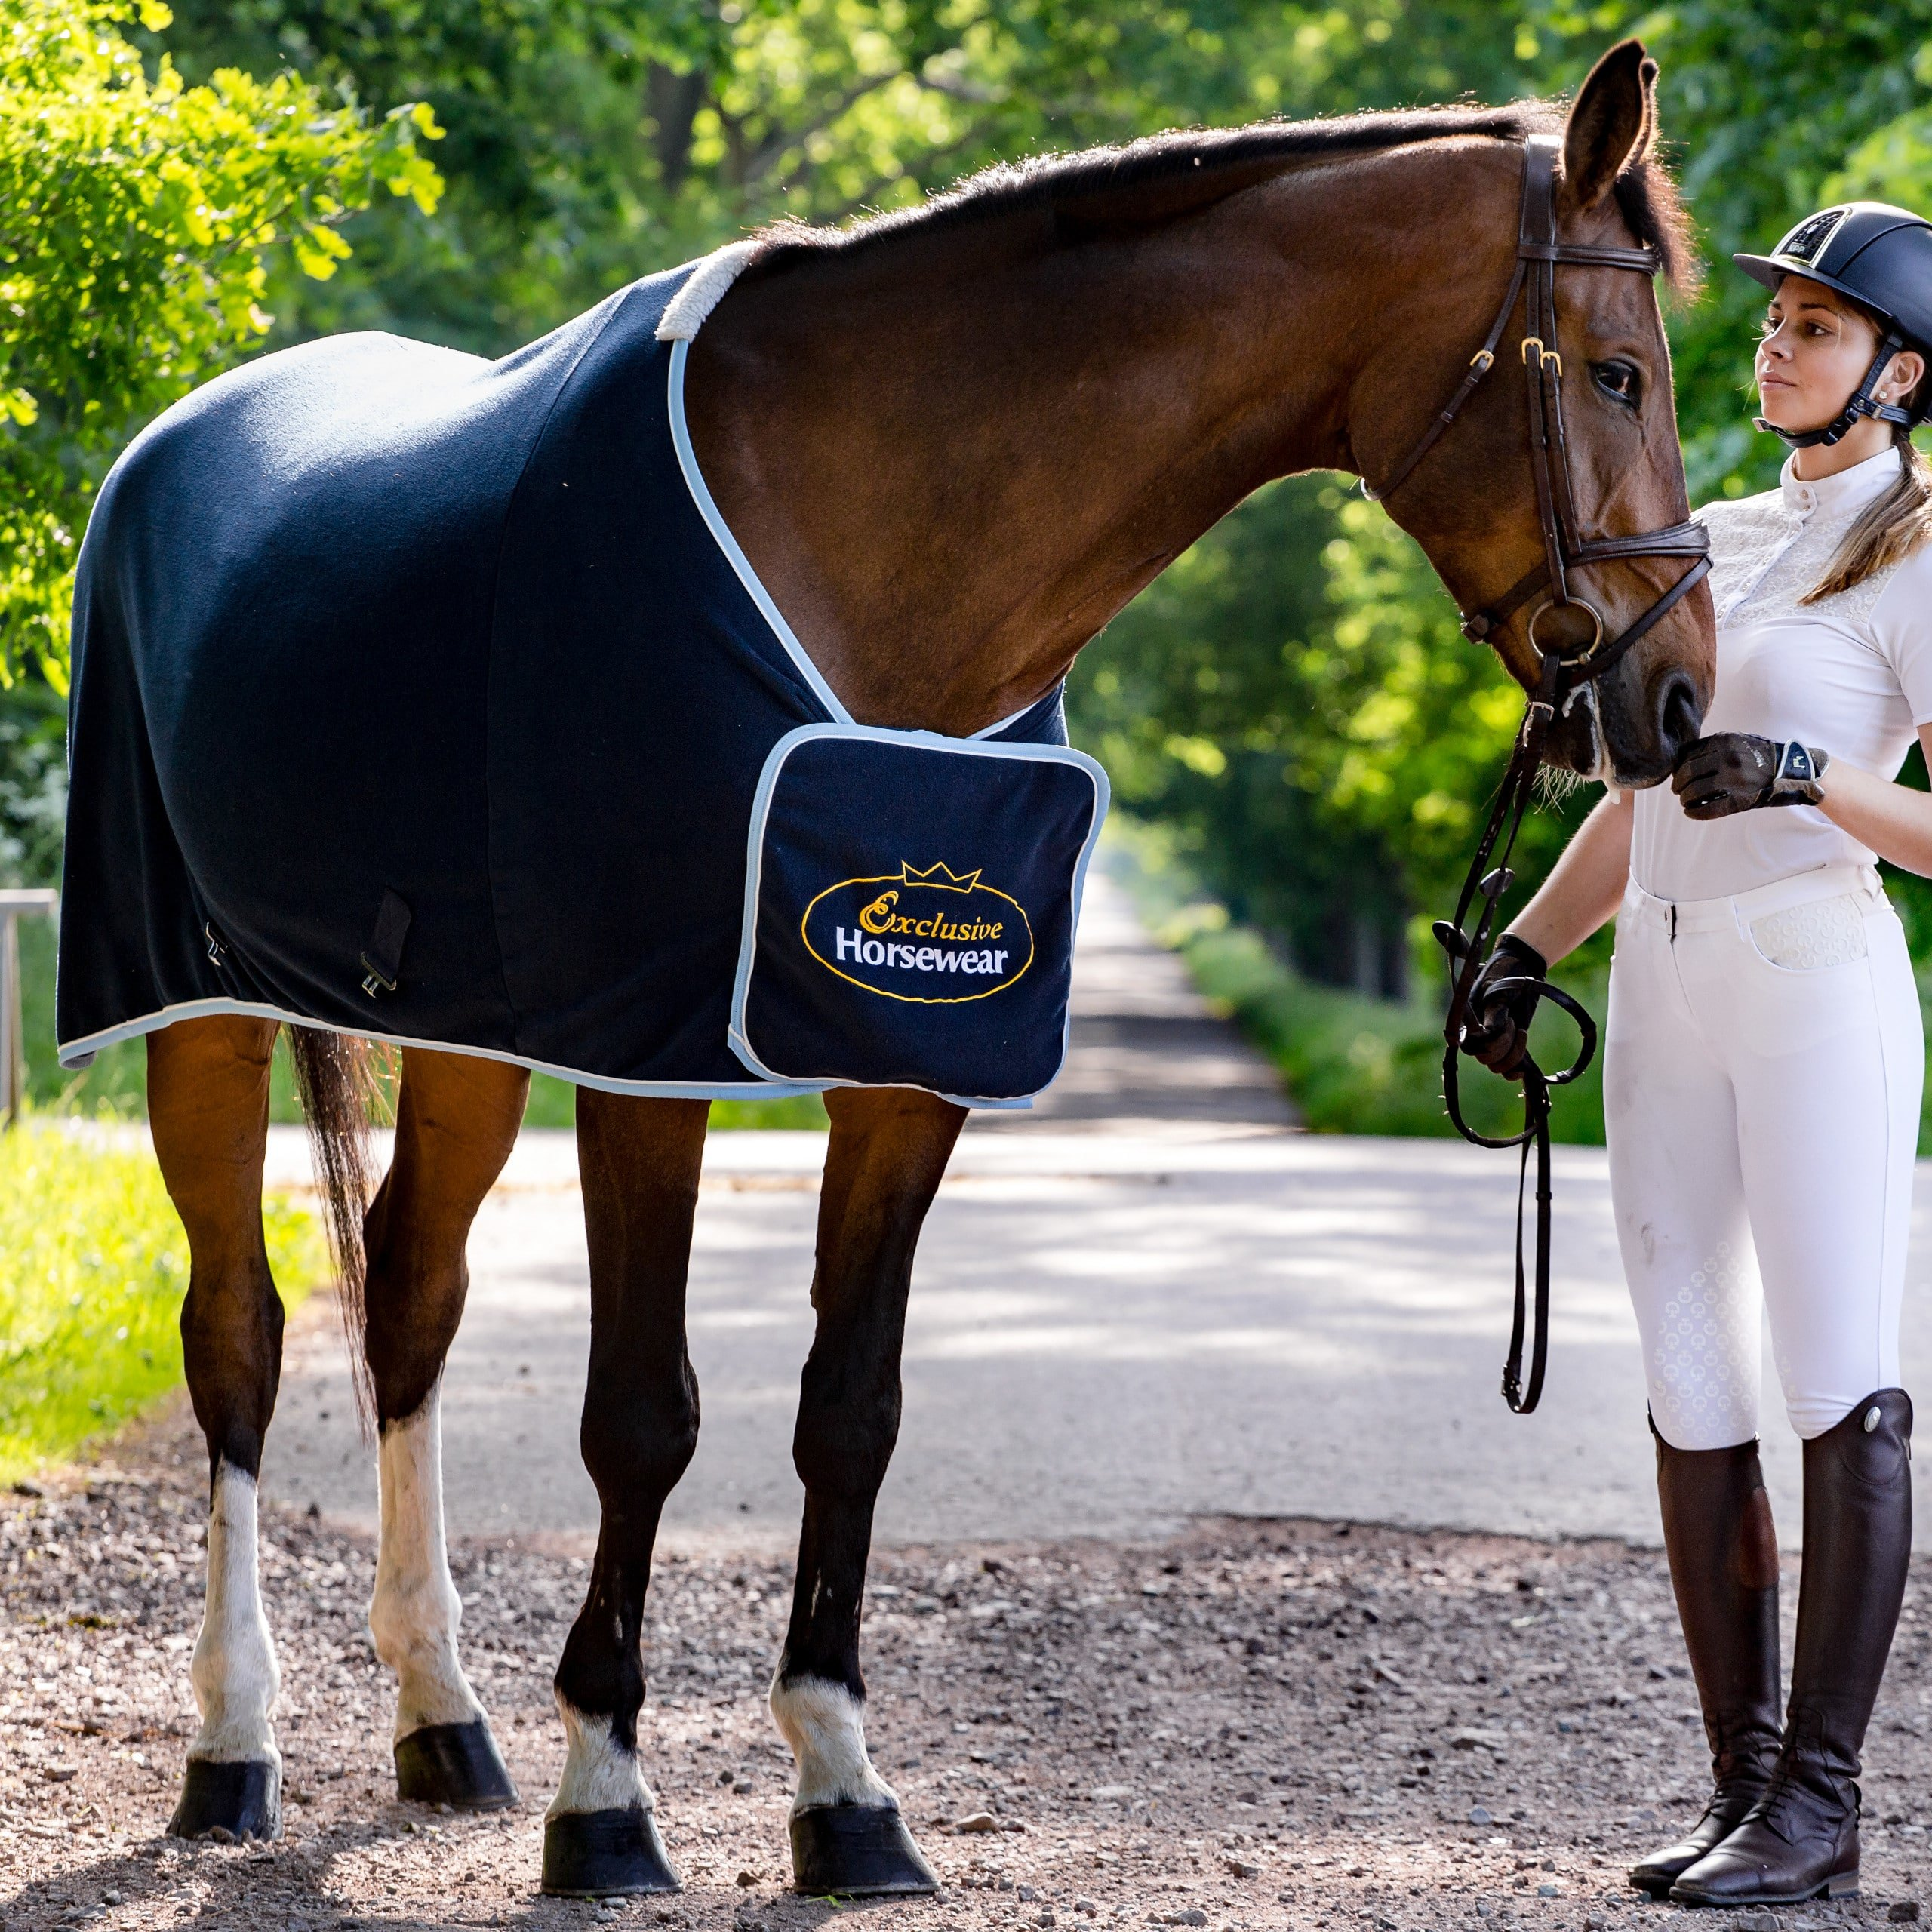 Exclusive Horsewear at Björn Castle with Show Rug FALSTERBO